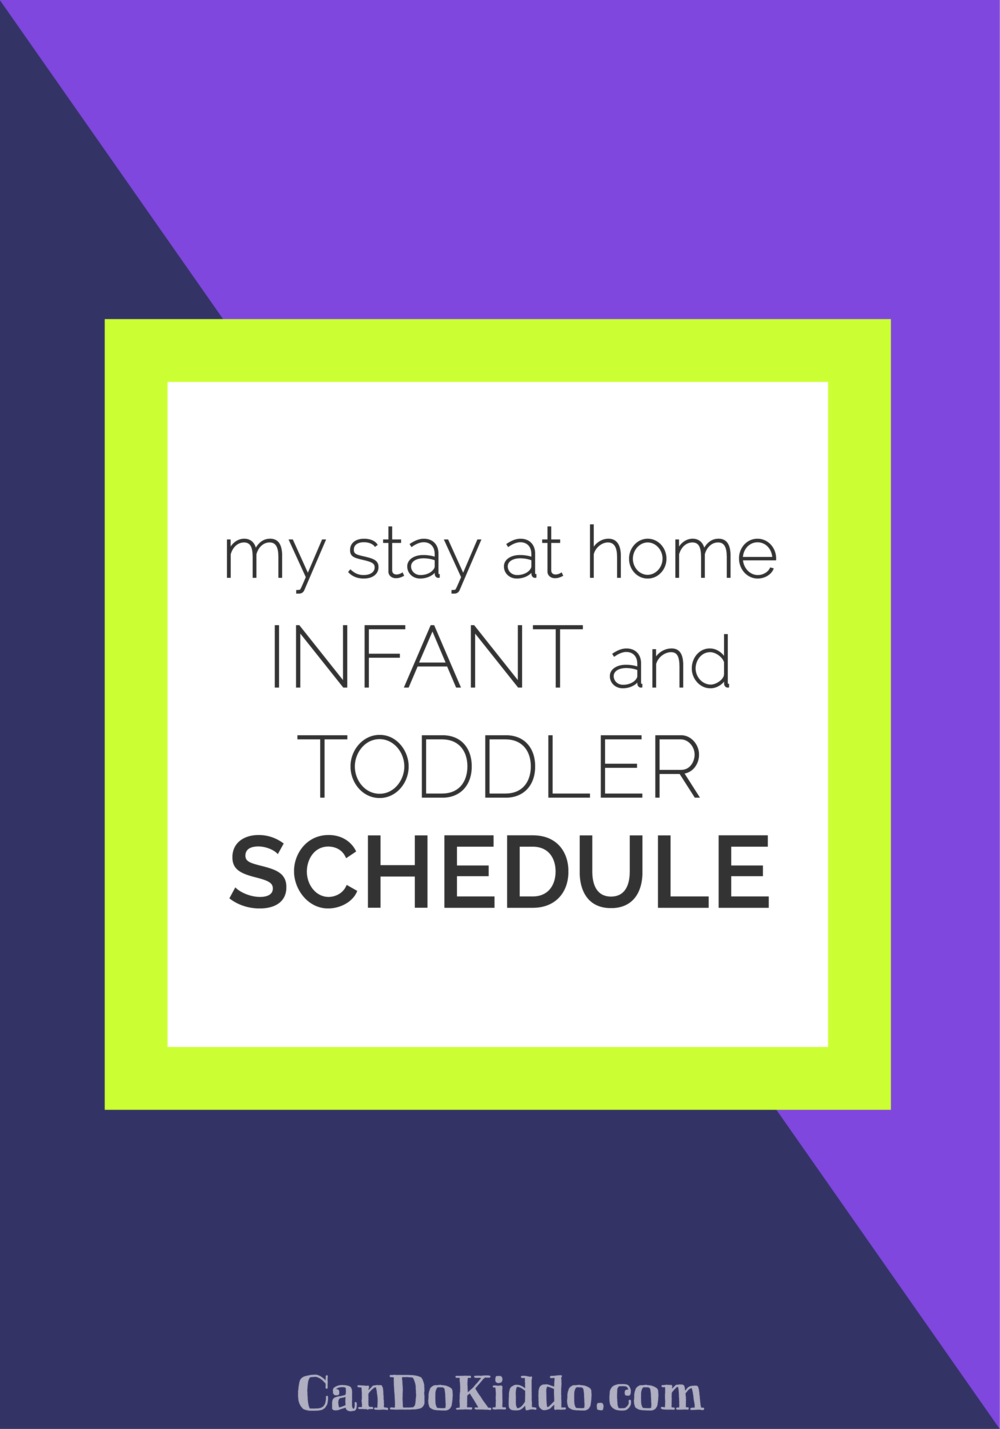 Infant Toddler Schedule thumbnail-06.png